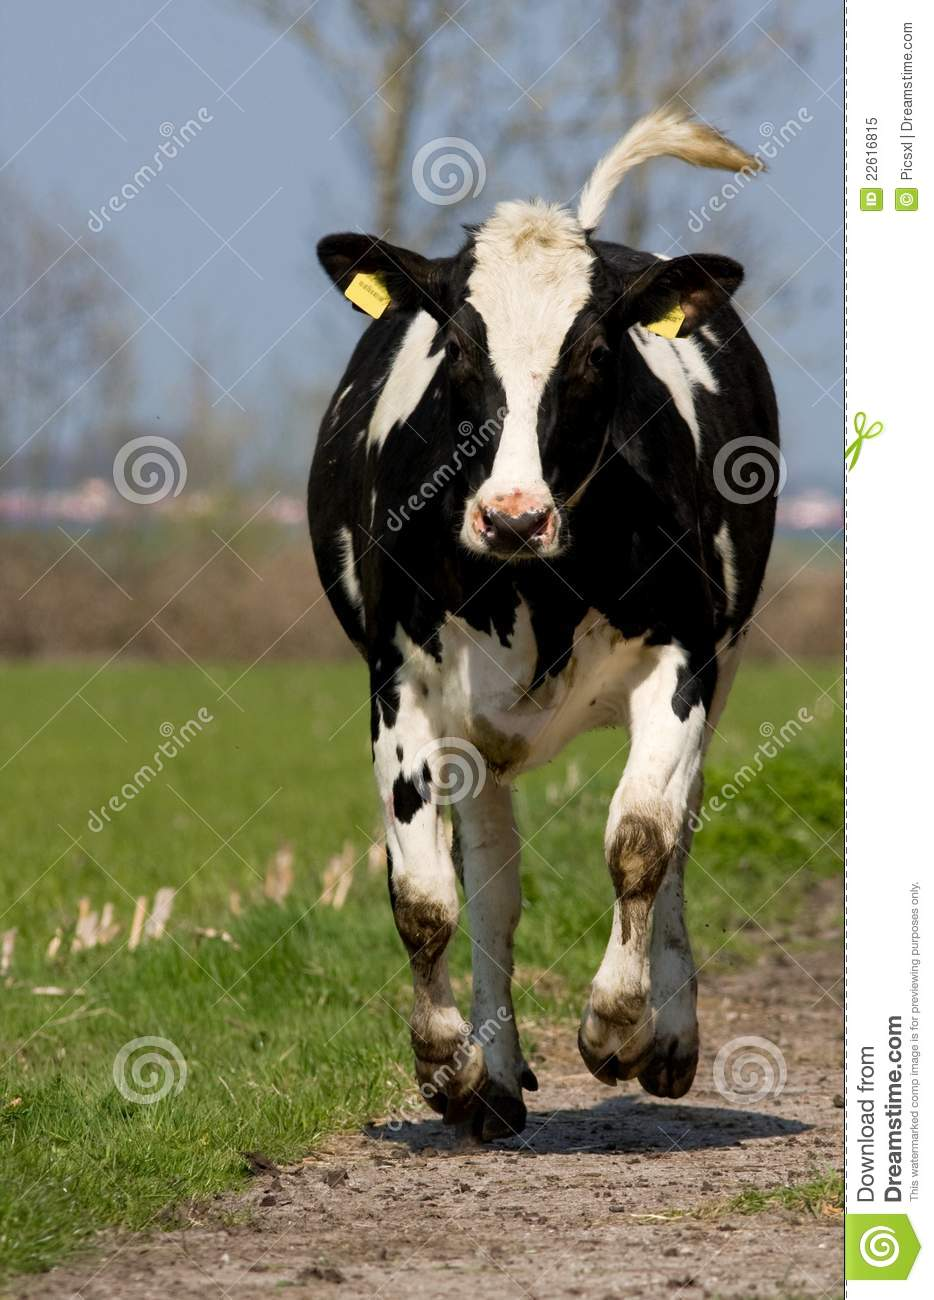 Black And White Cow Royalty Free Stock Photo